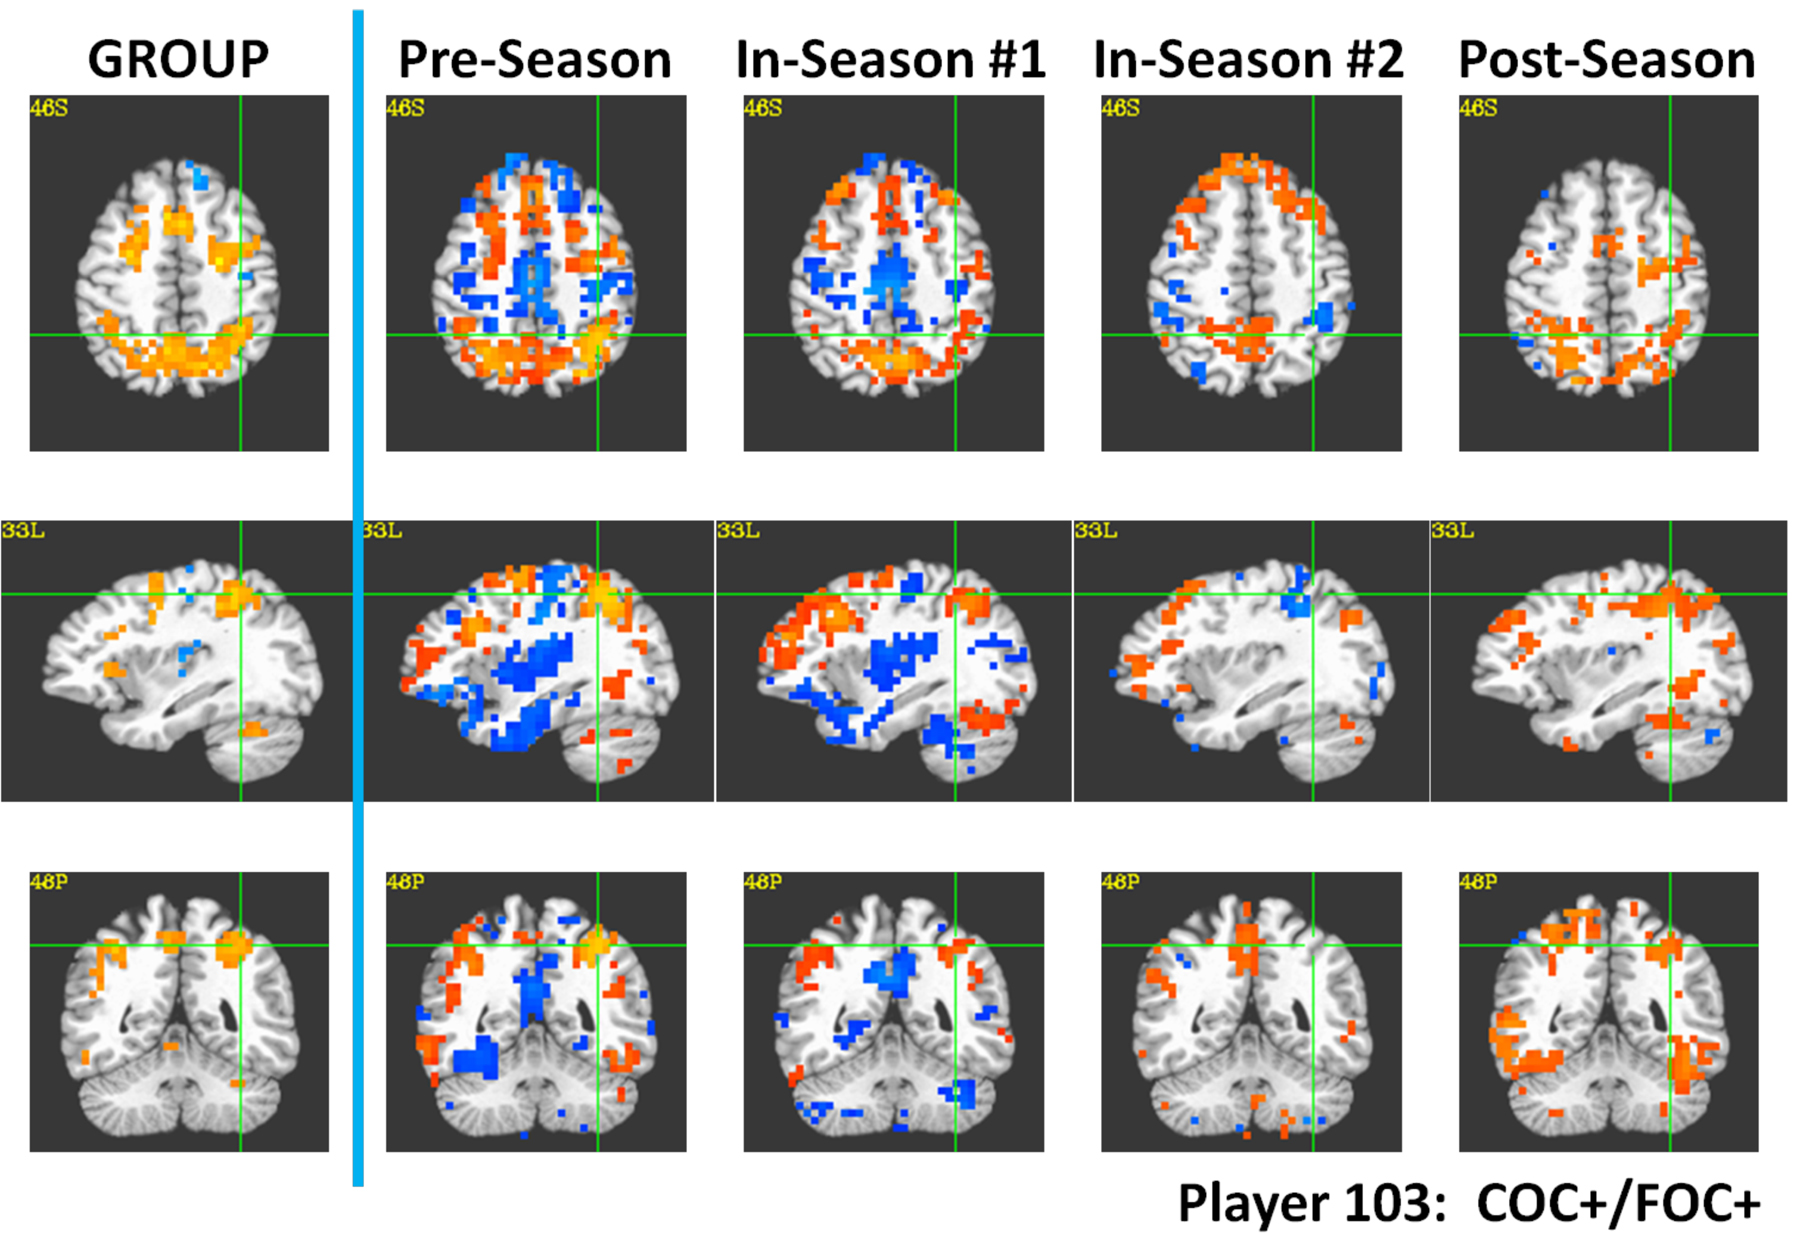 Repeated Head Hits Not Just Concussions >> Football Findings Suggest Concussions Caused By Series Of Hits